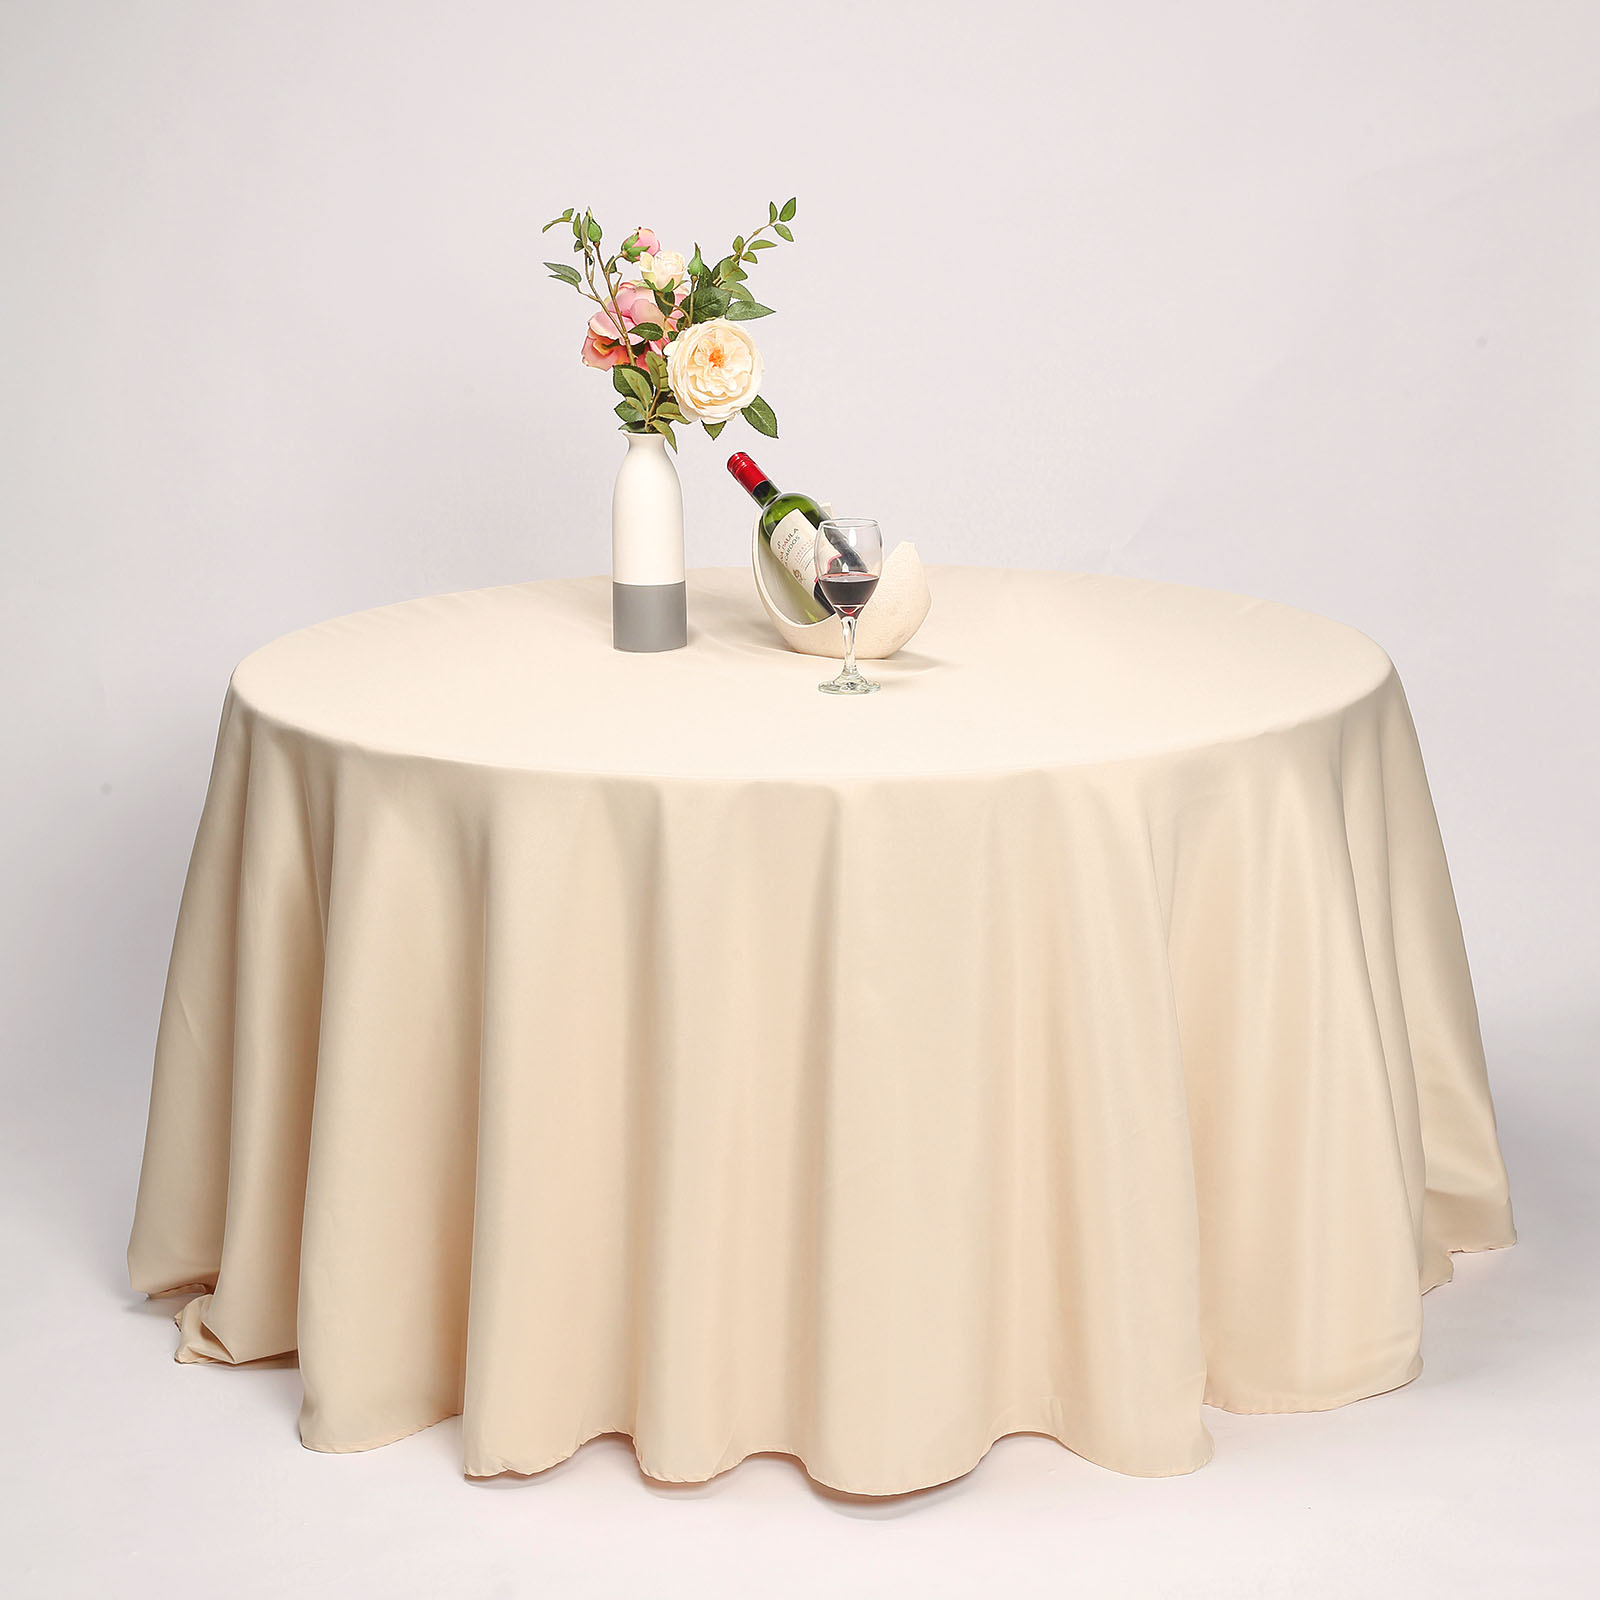 """BalsaCircle 132"""" Round Polyester Tablecloths for Party Wedding Reception Catering Dining Home Table Linens"""